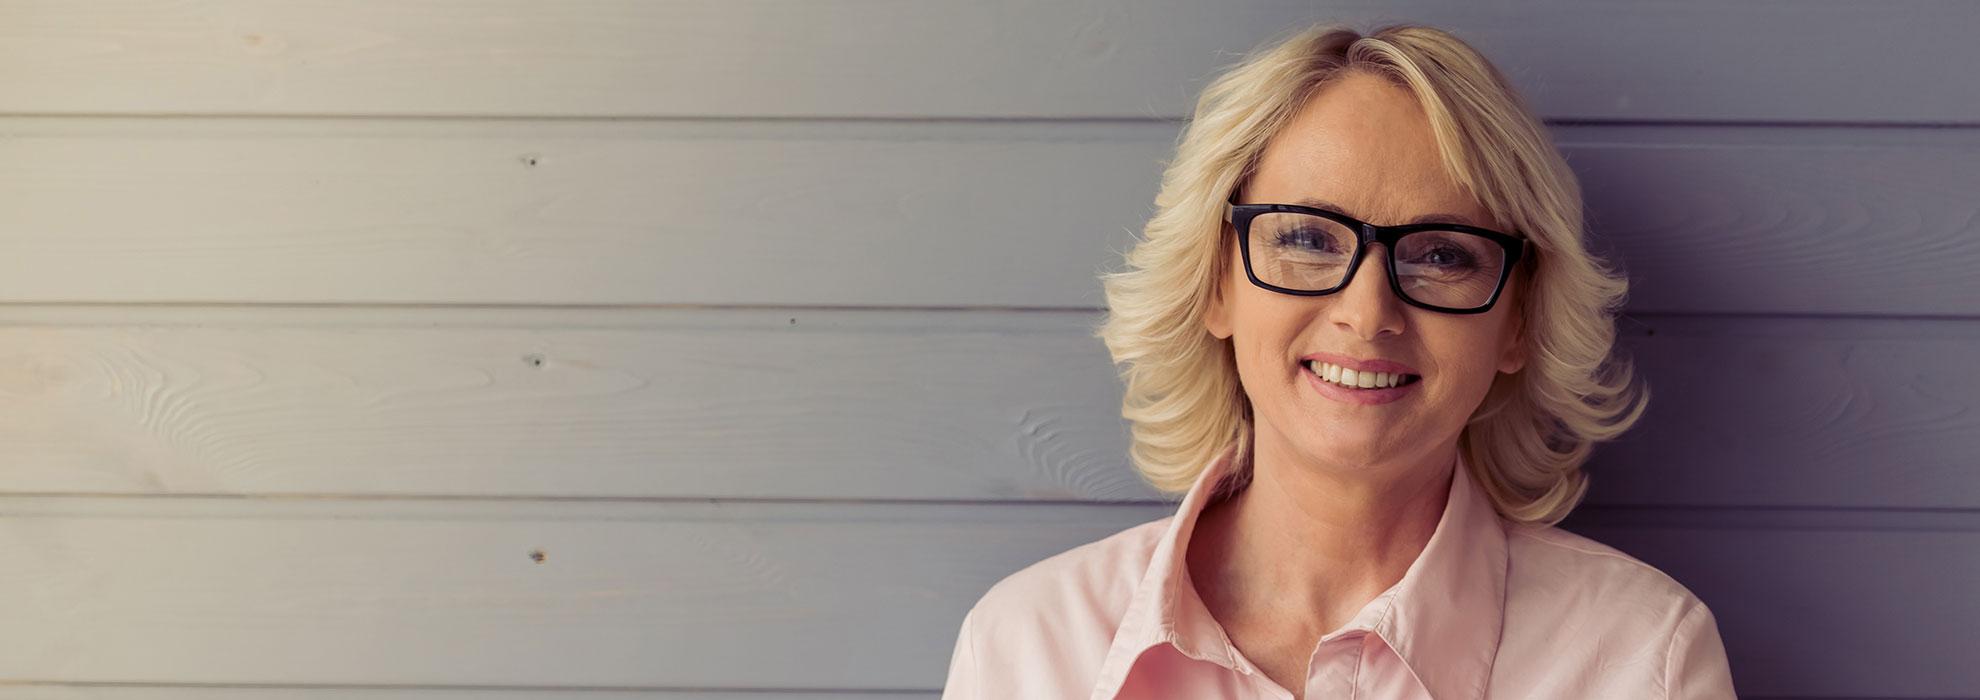 White female wearing pink shirt and glasses against gray wall